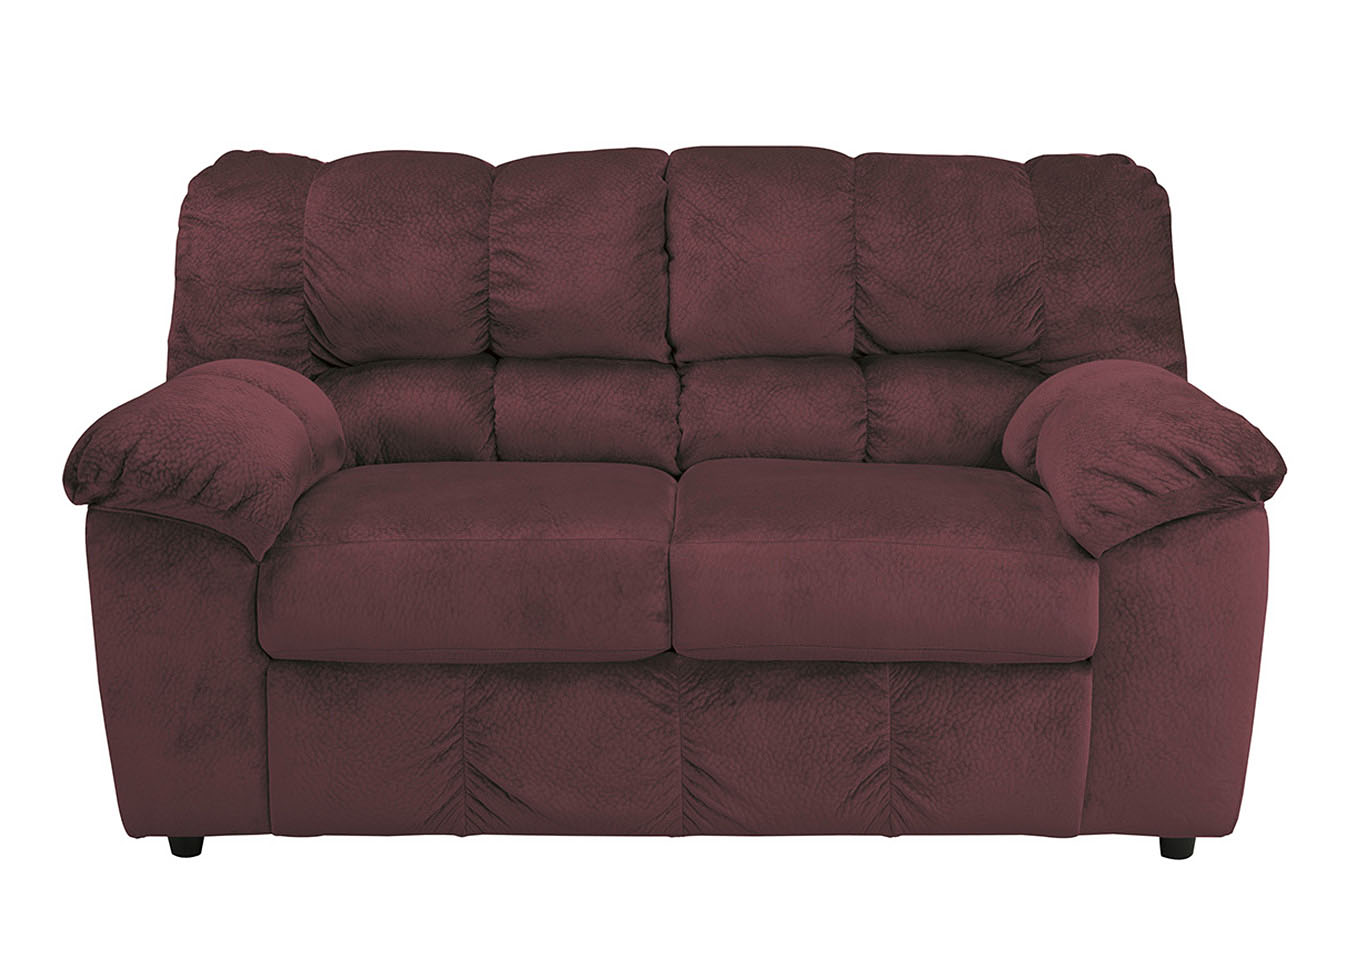 Furniture liquidators home center julson burgundy loveseat for Furniture liquidators